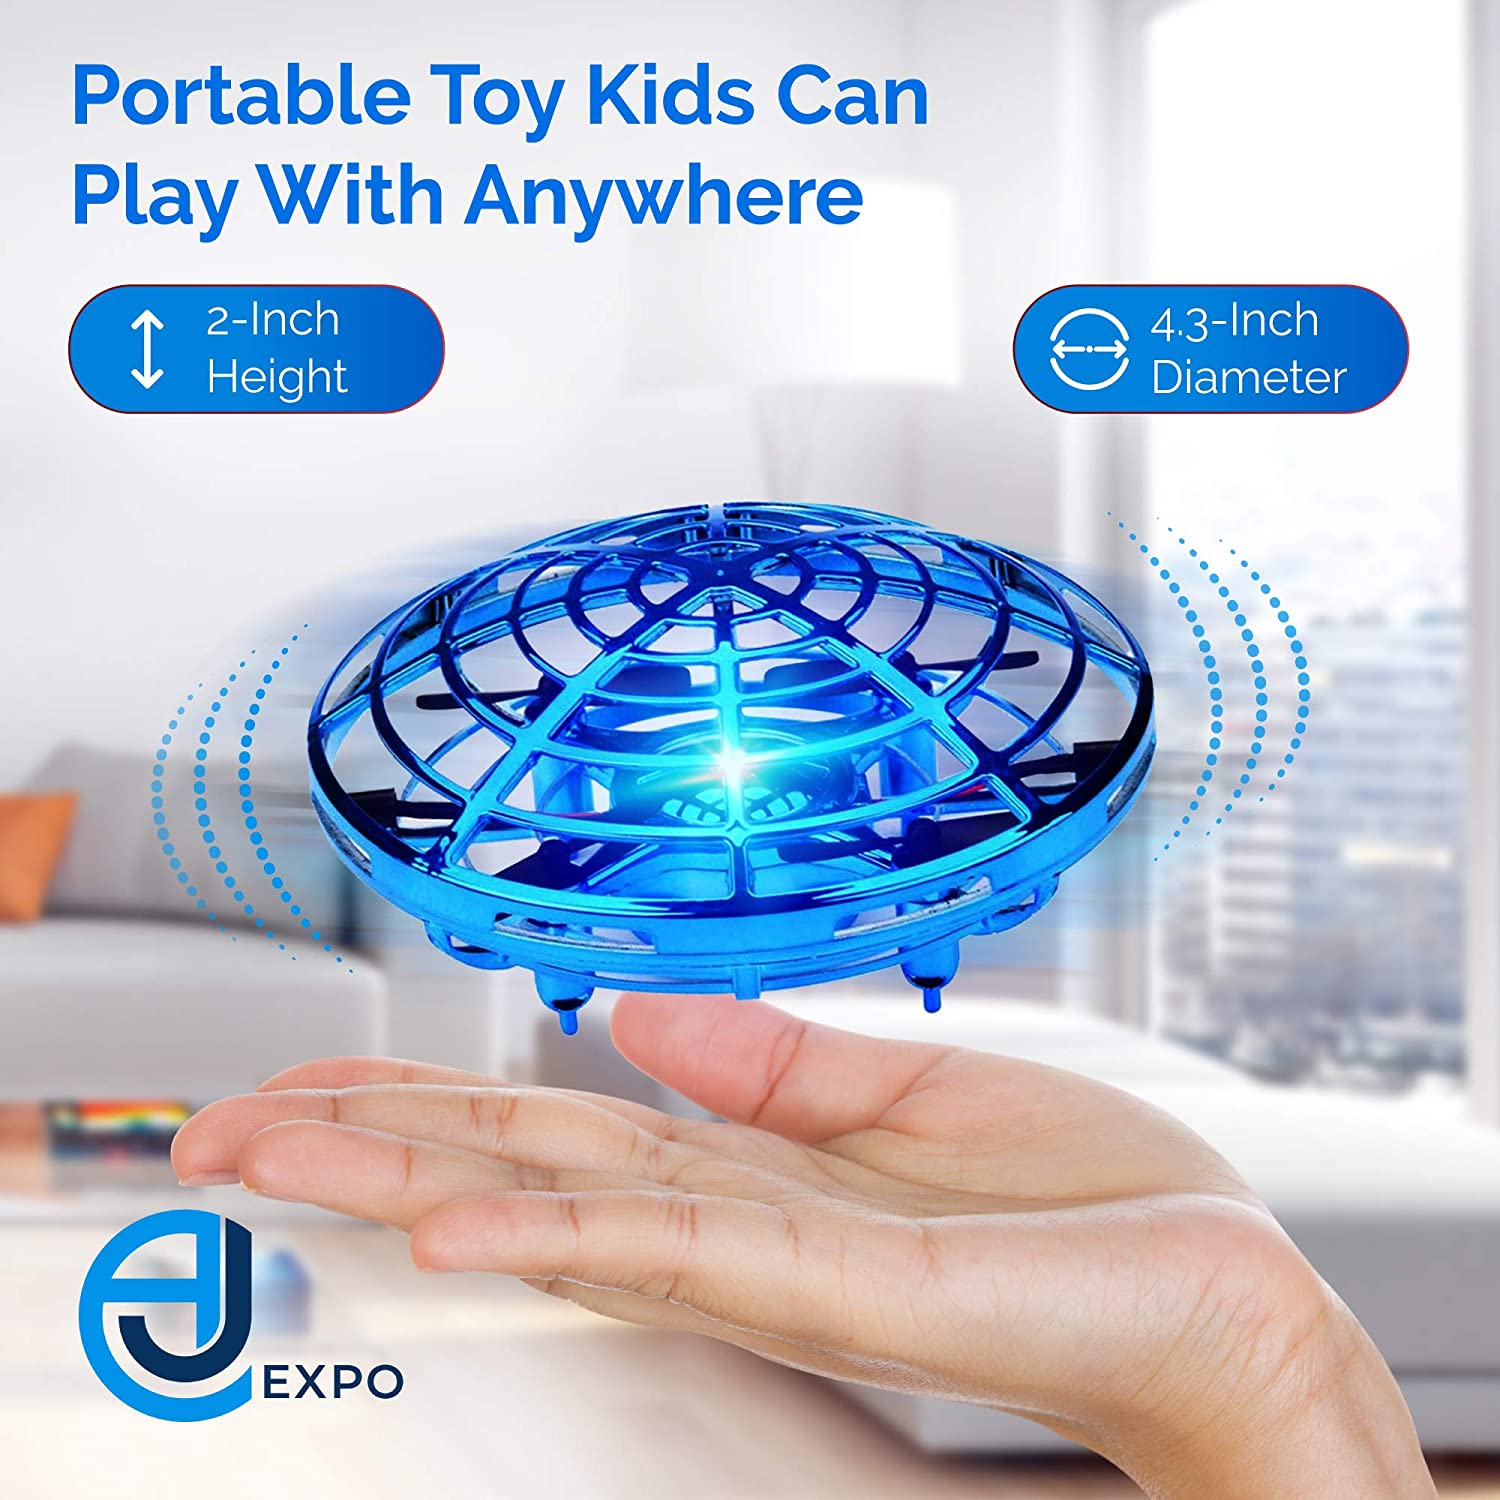 UFO Mini Drone with Upgraded Sensors AJ Expo Hand Operated Drone for Kids Long Lasting Rechargeable Battery /& LED Lights Blue Flexible Caged Quadcopter Provides Safe Fun Indoors /& Outdoors